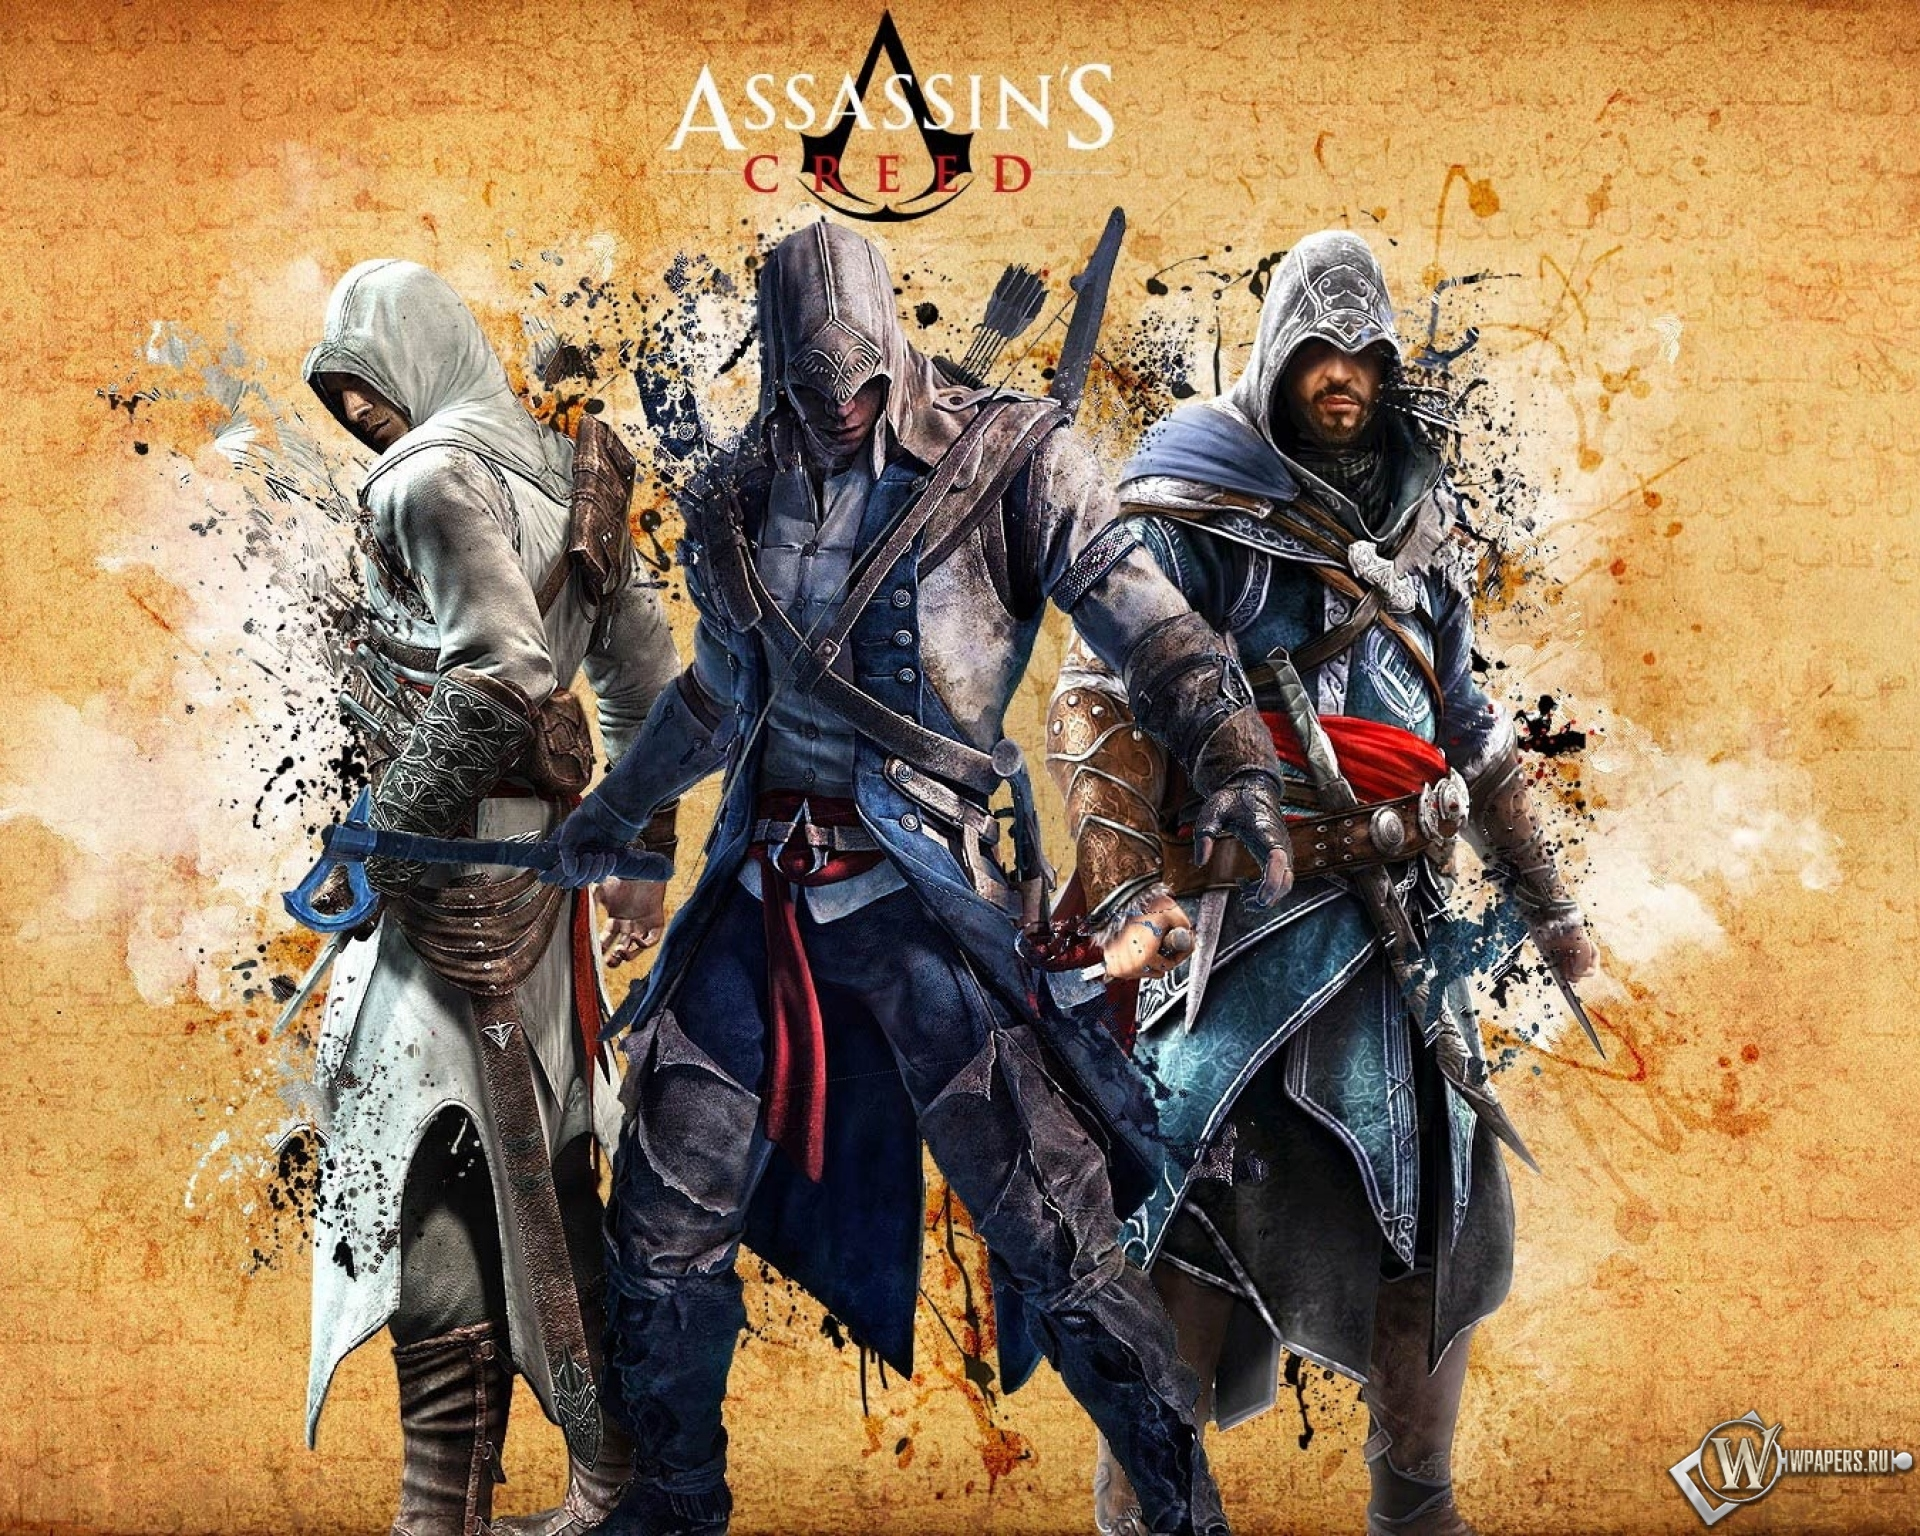 http://wpapers.ru/wallpapers/games/Assassins-creed/15927/download/1920x1536_Assassins-creed.jpg